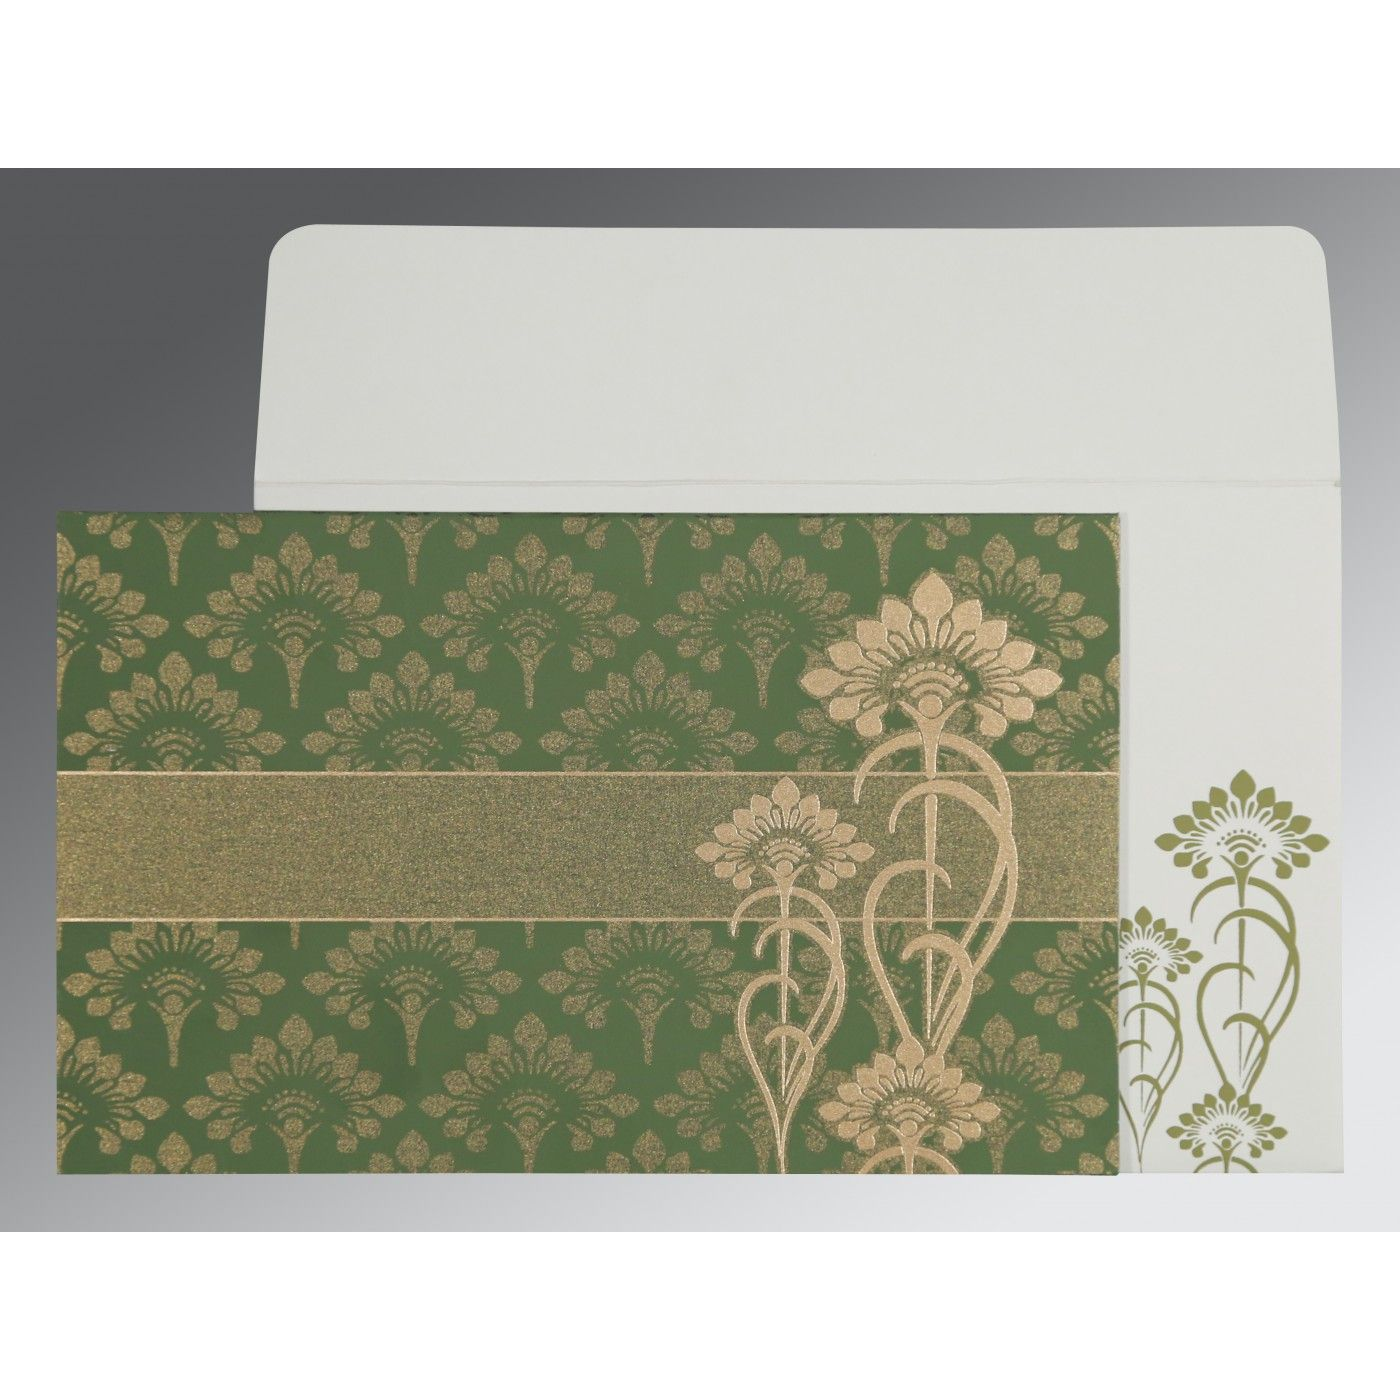 OLIVE GREEN SHIMMERY SCREEN PRINTED WEDDING CARD : CSO-8239F - IndianWeddingCards